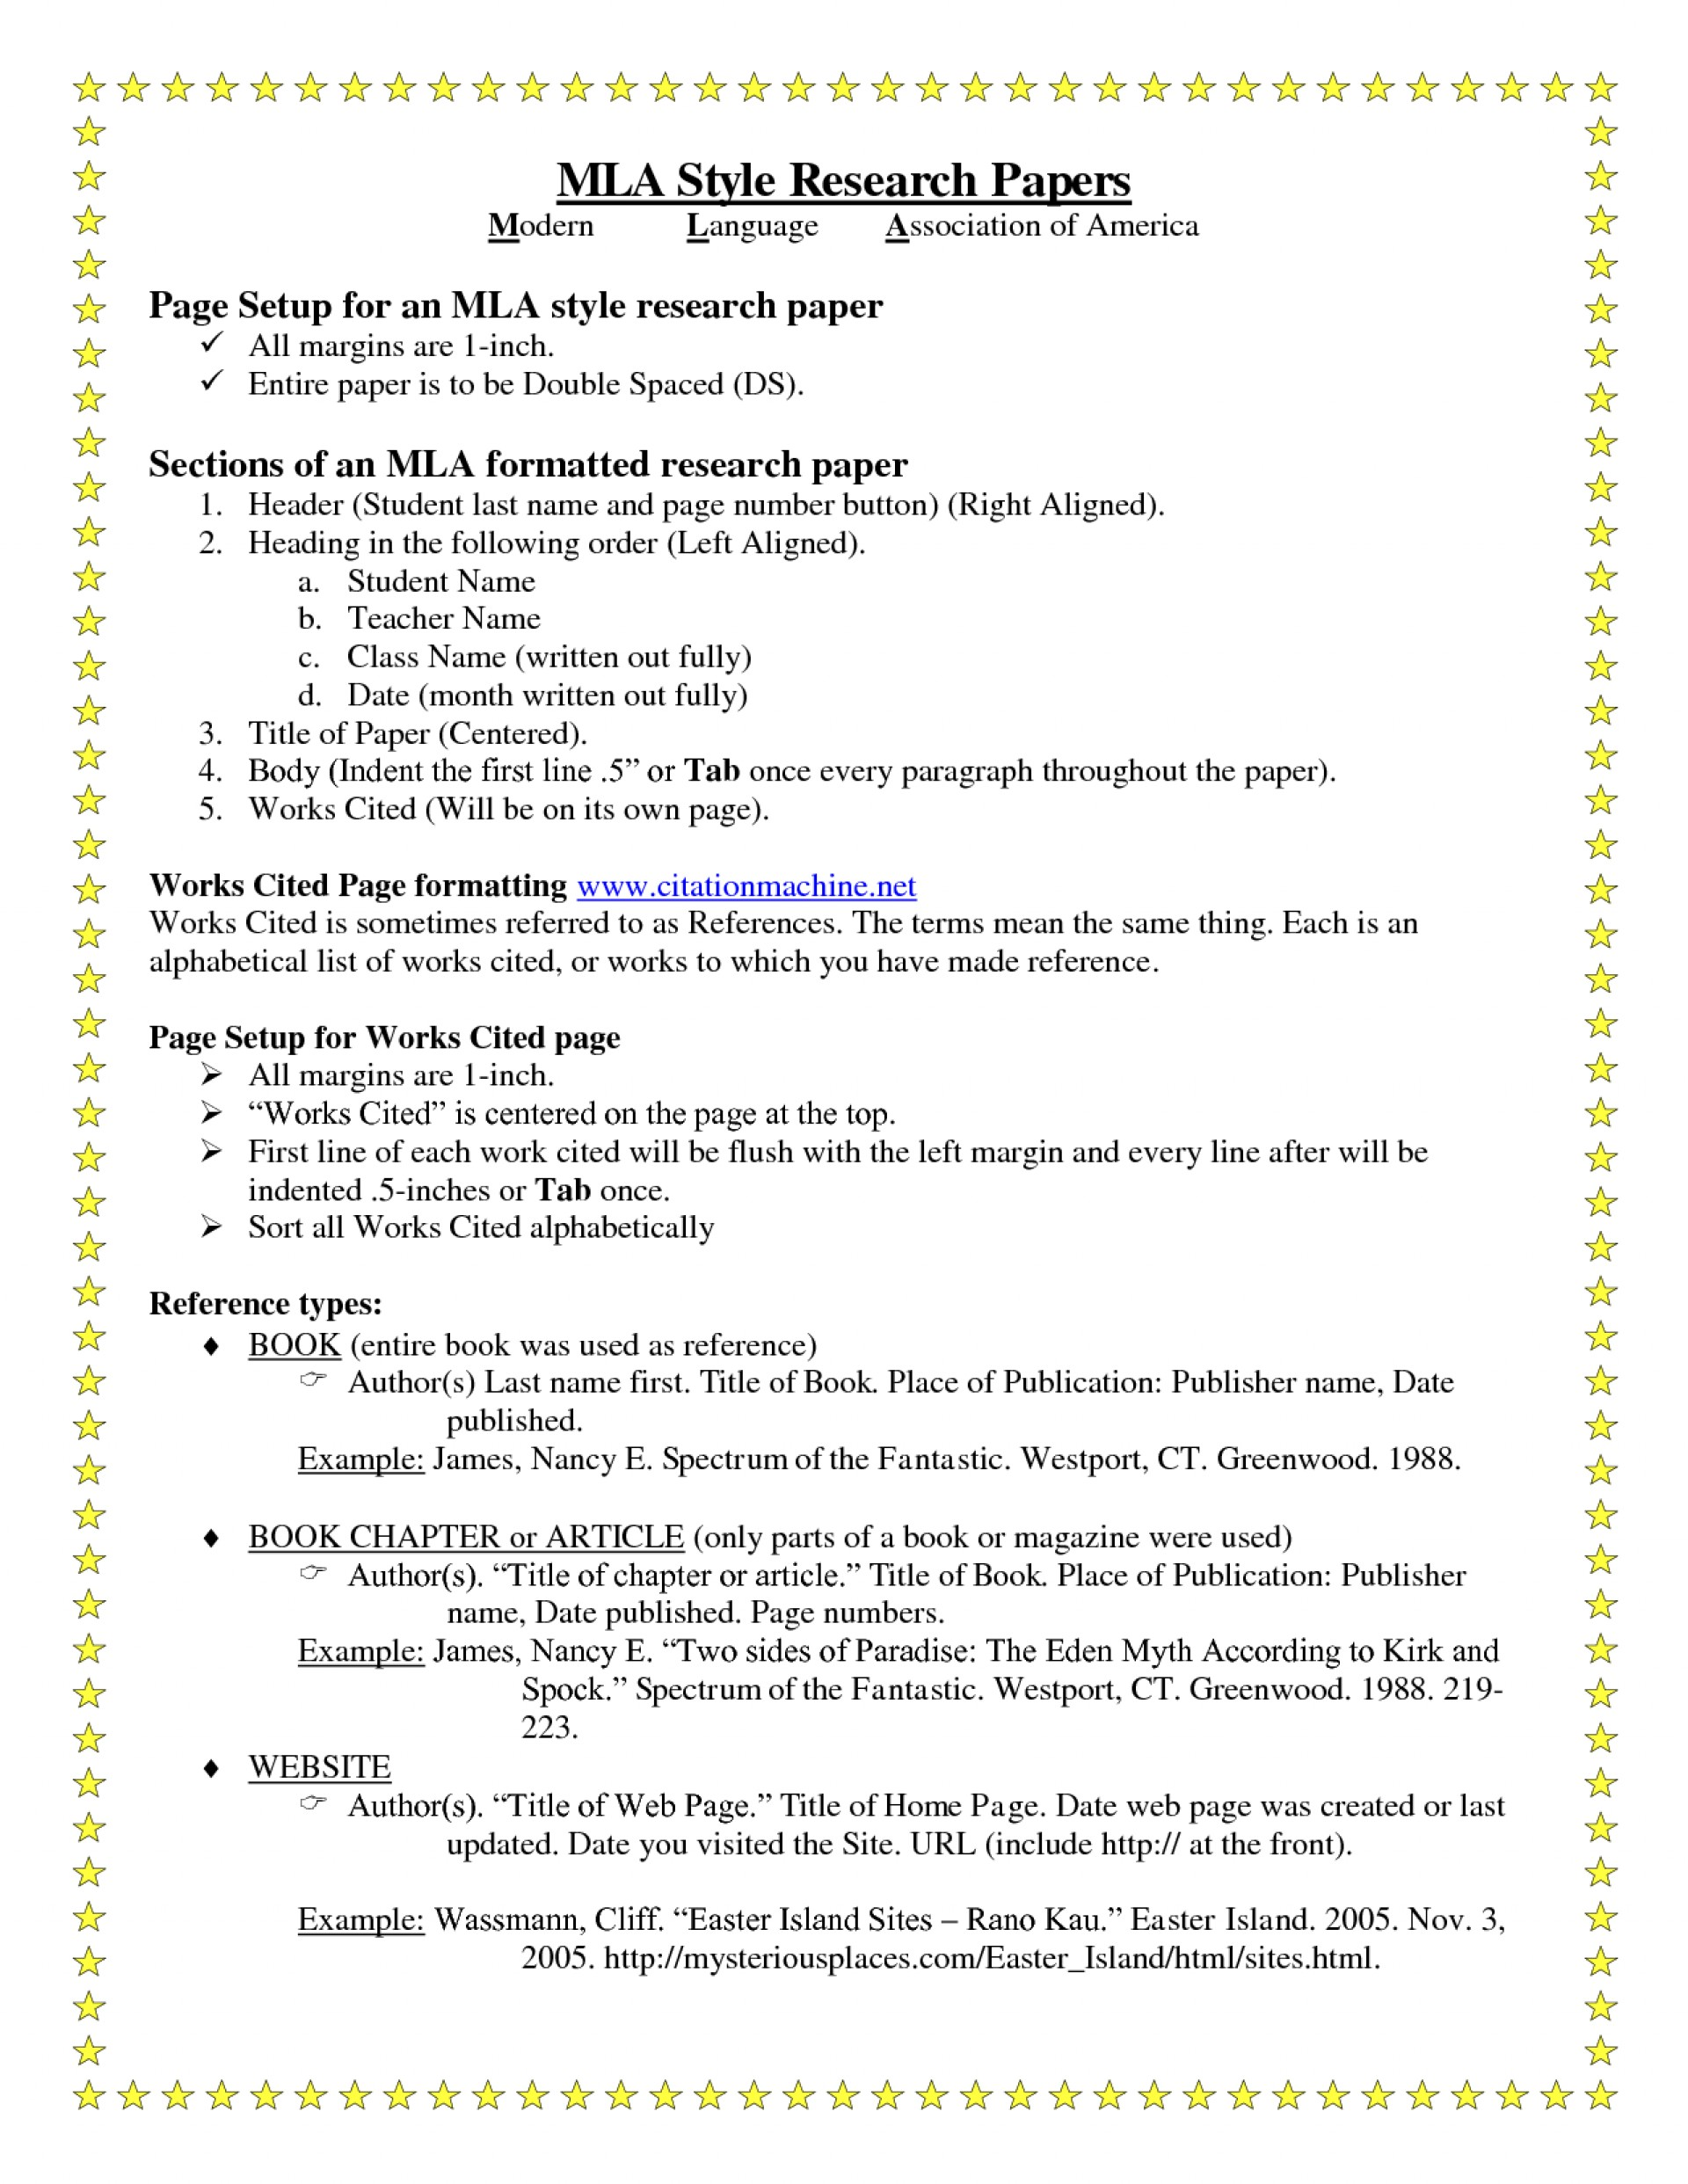 006 Order Of Research Paper Headings In Breathtaking Reviews A Mla Authors 1920